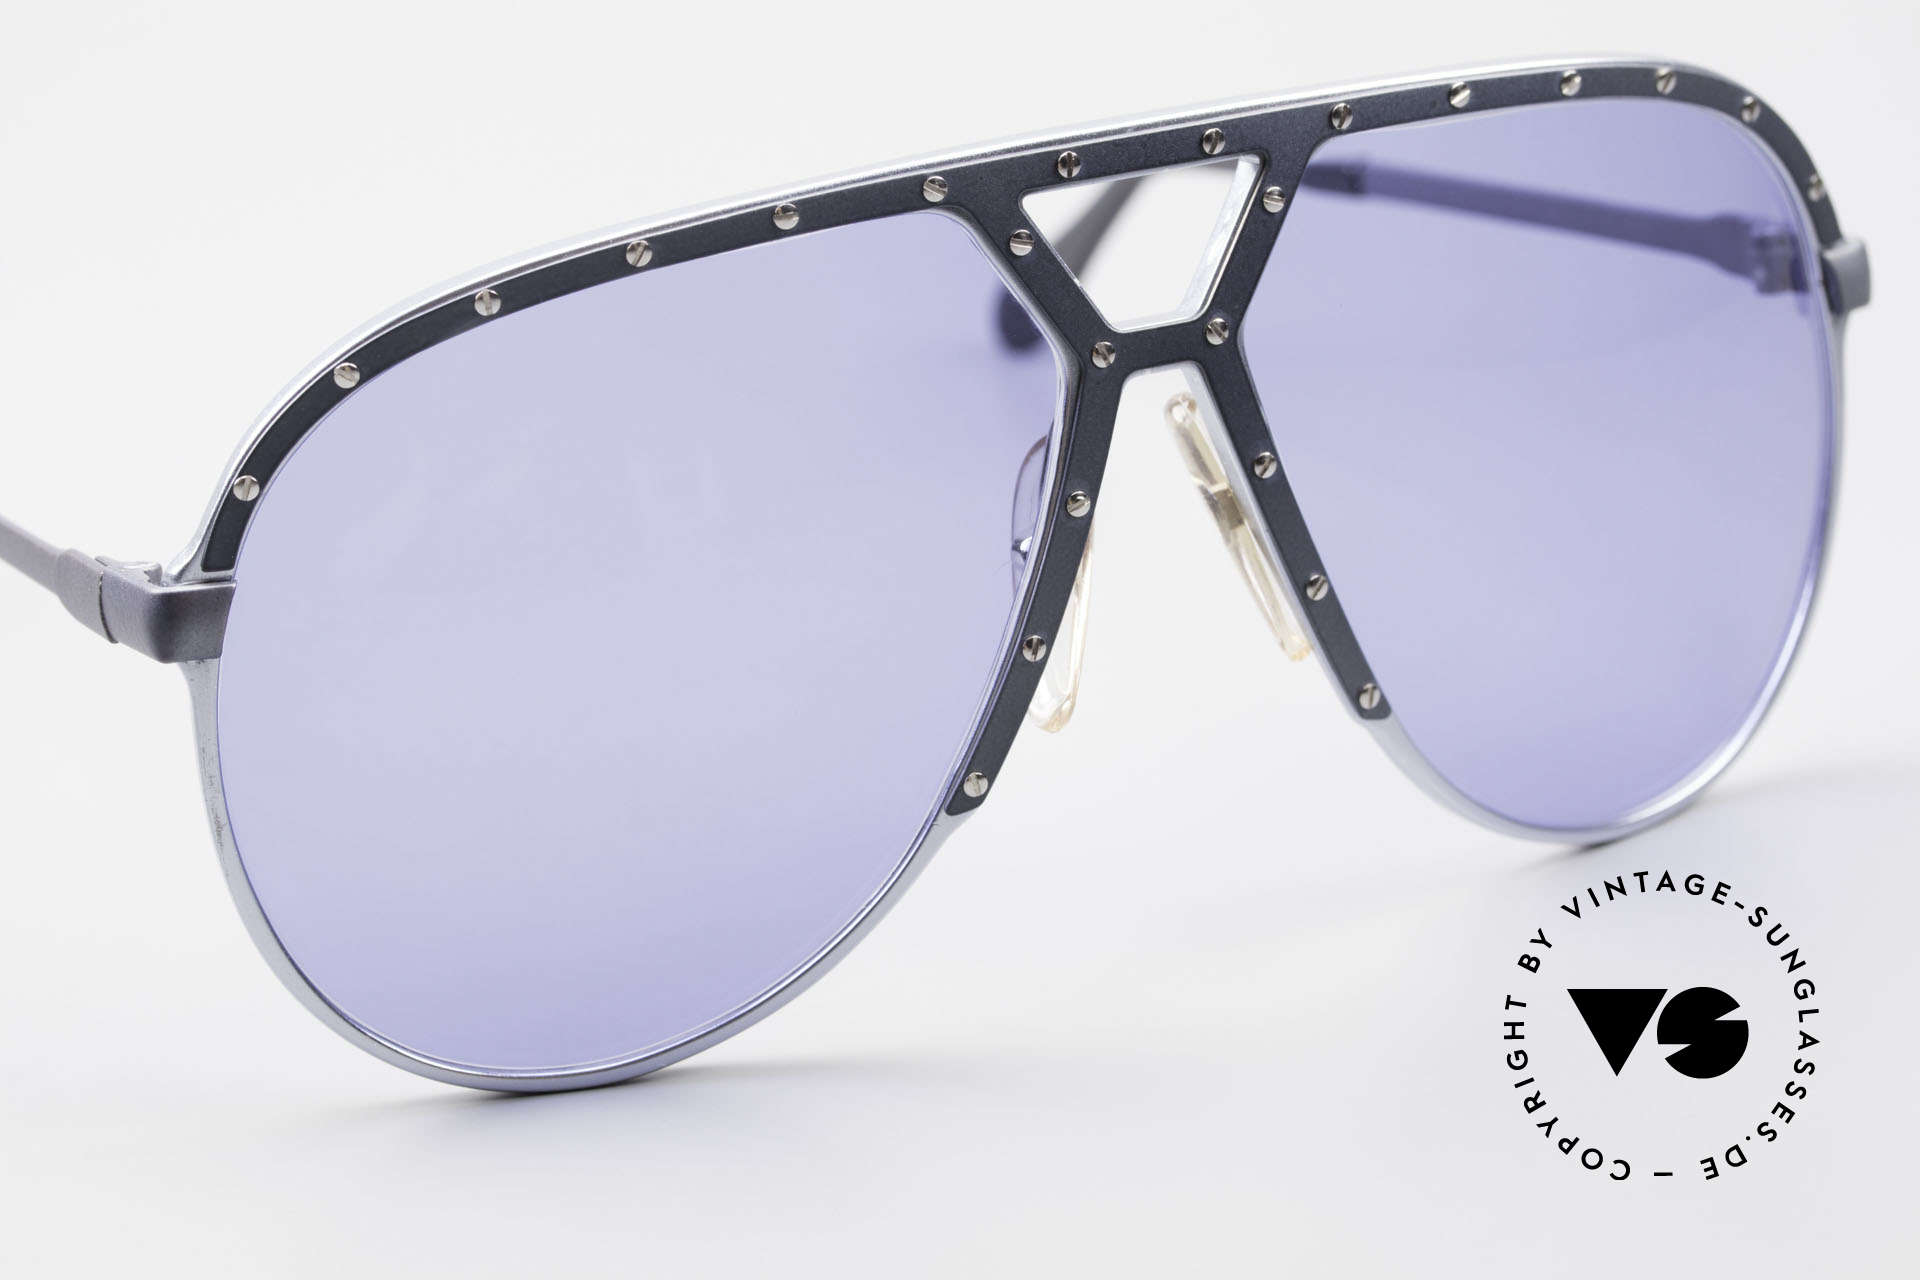 Alpina M1 Old M1 Sunglasses from 1981, unworn with blue sun lenses & with a Bvlgari case, Made for Men